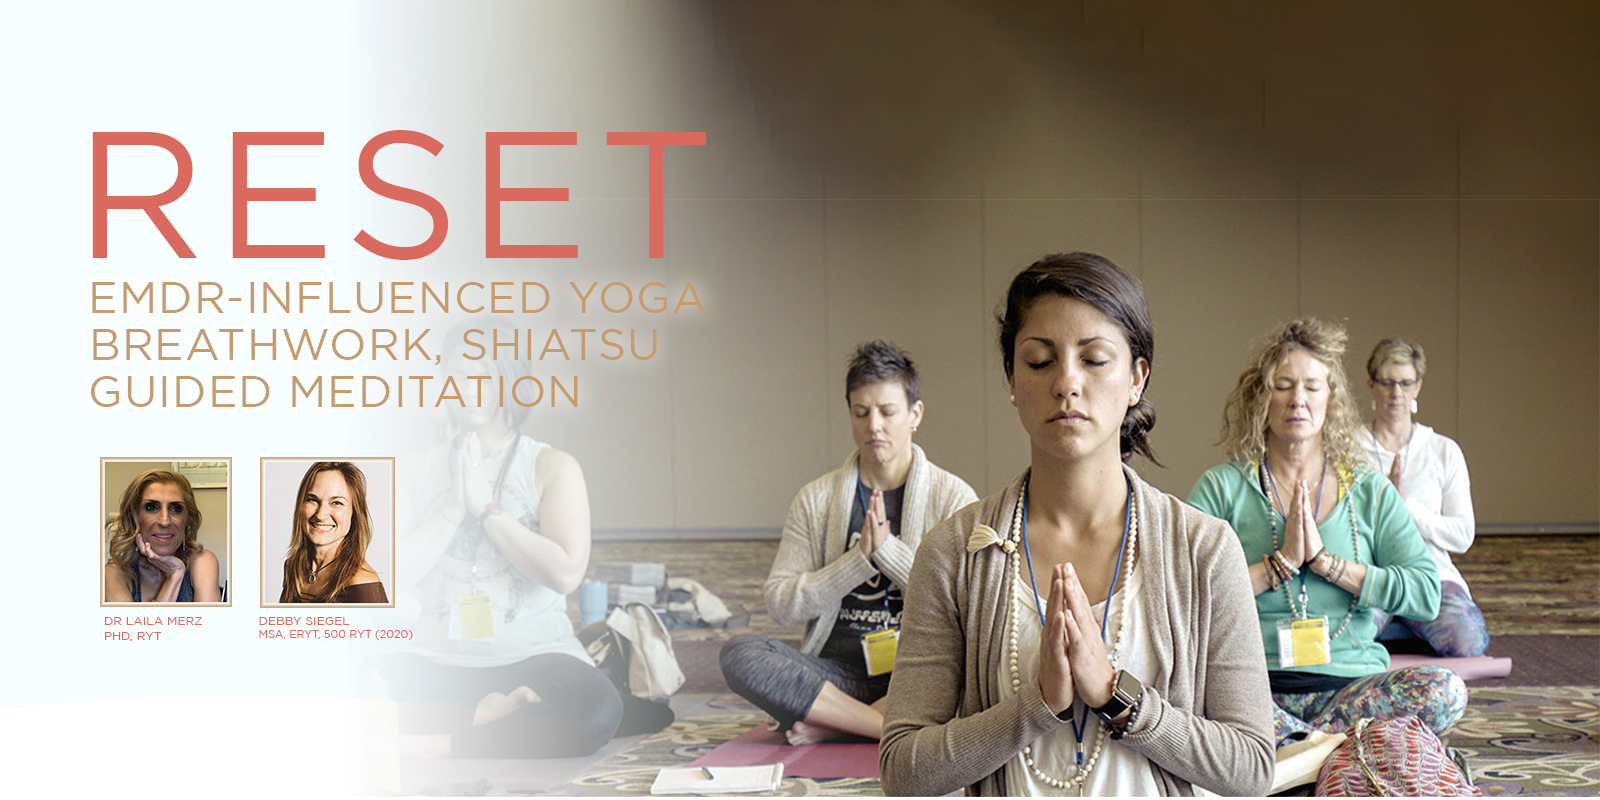 RESET with EMDR-influenced Yoga, Shiatsu & Meditation